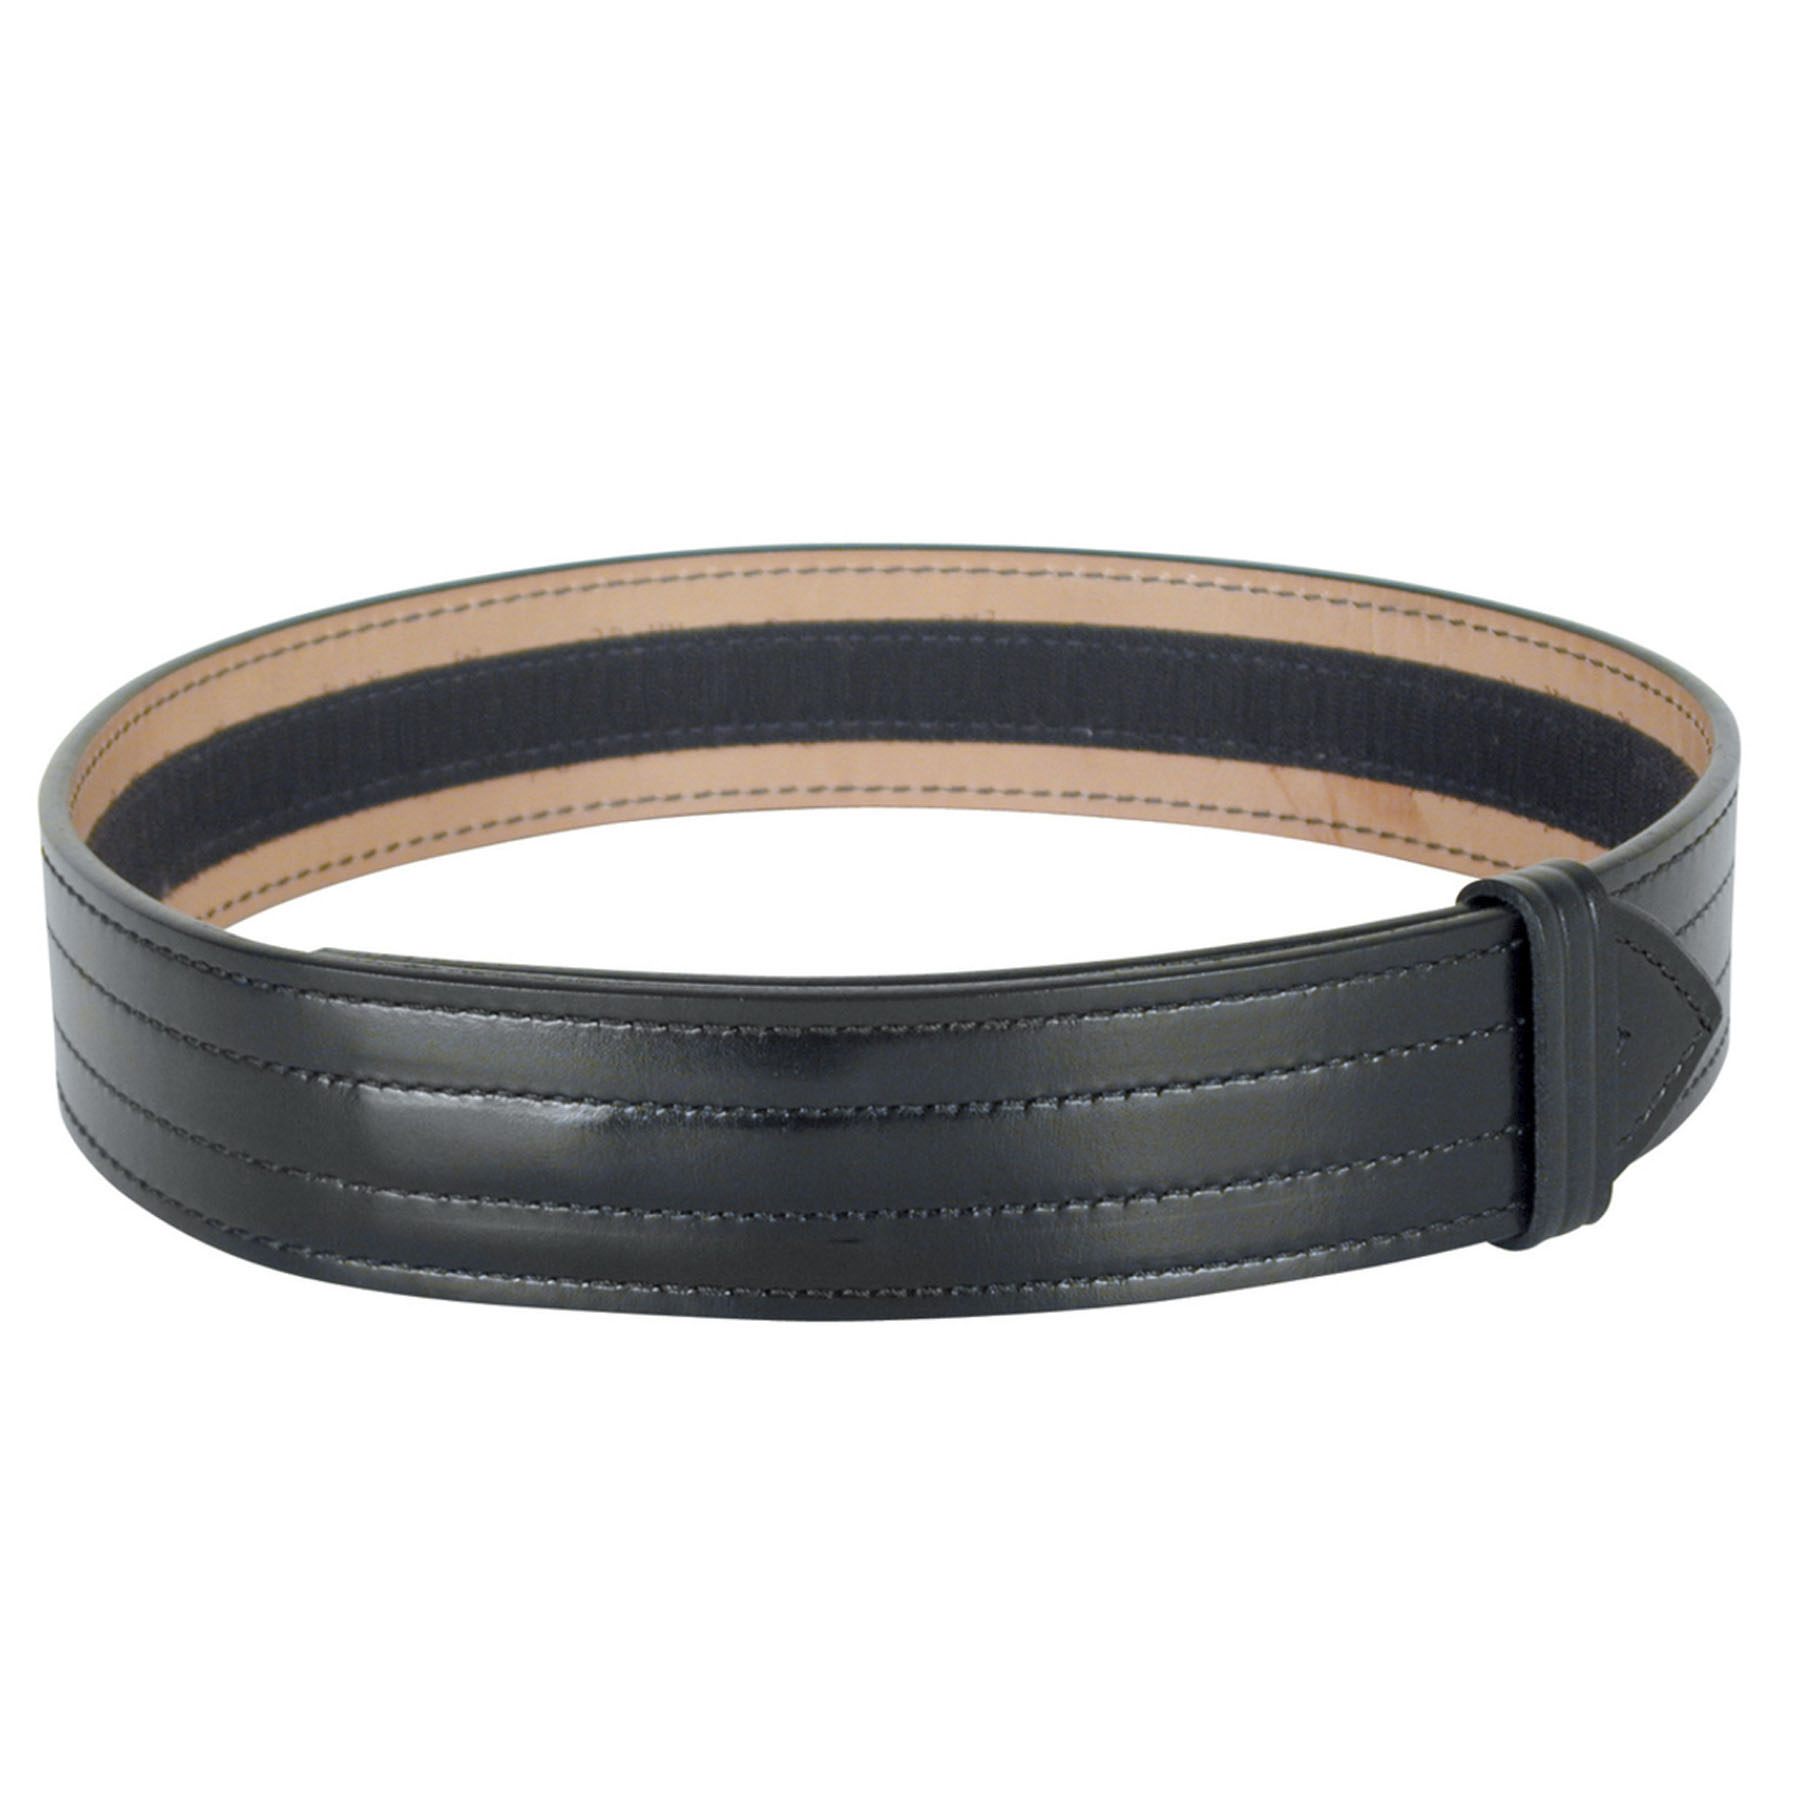 Don Hume Sam Browne Belt ZP675